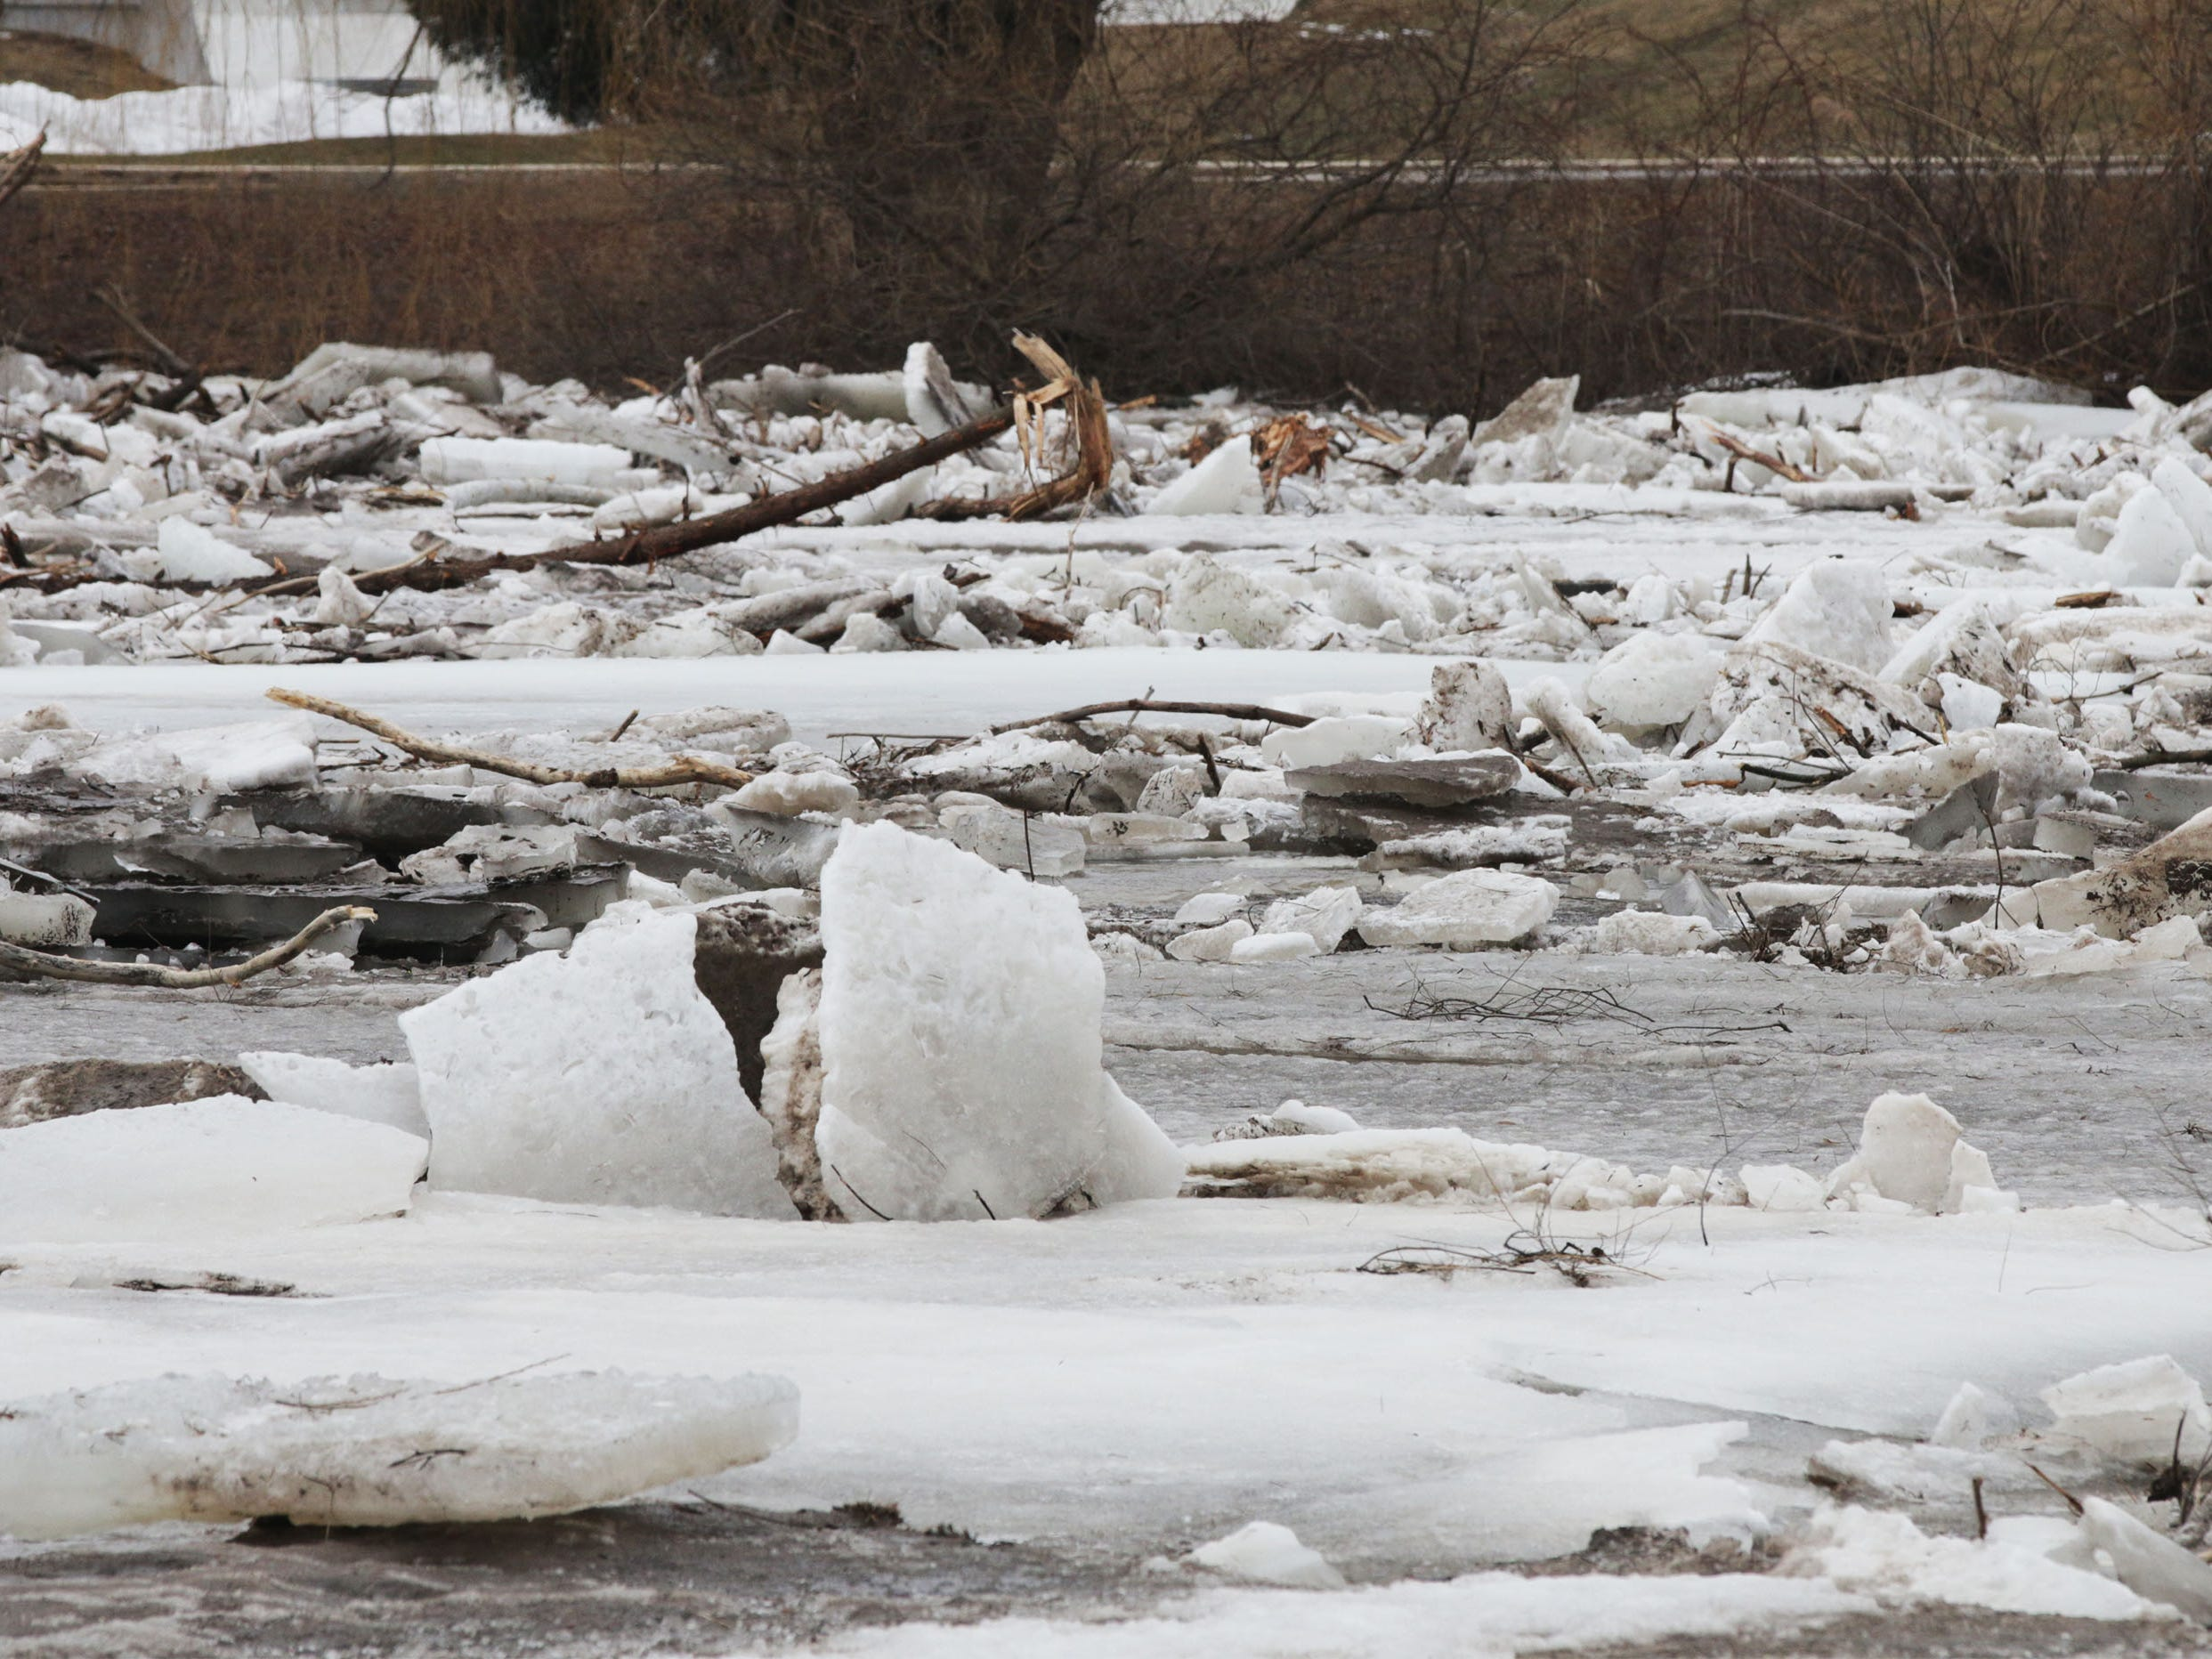 Tree limbs and slabs of ice jam at Kiwanis Park on the Sheboygan River, Wednesday, March 20, 2019, in Sheboygan, Wis.